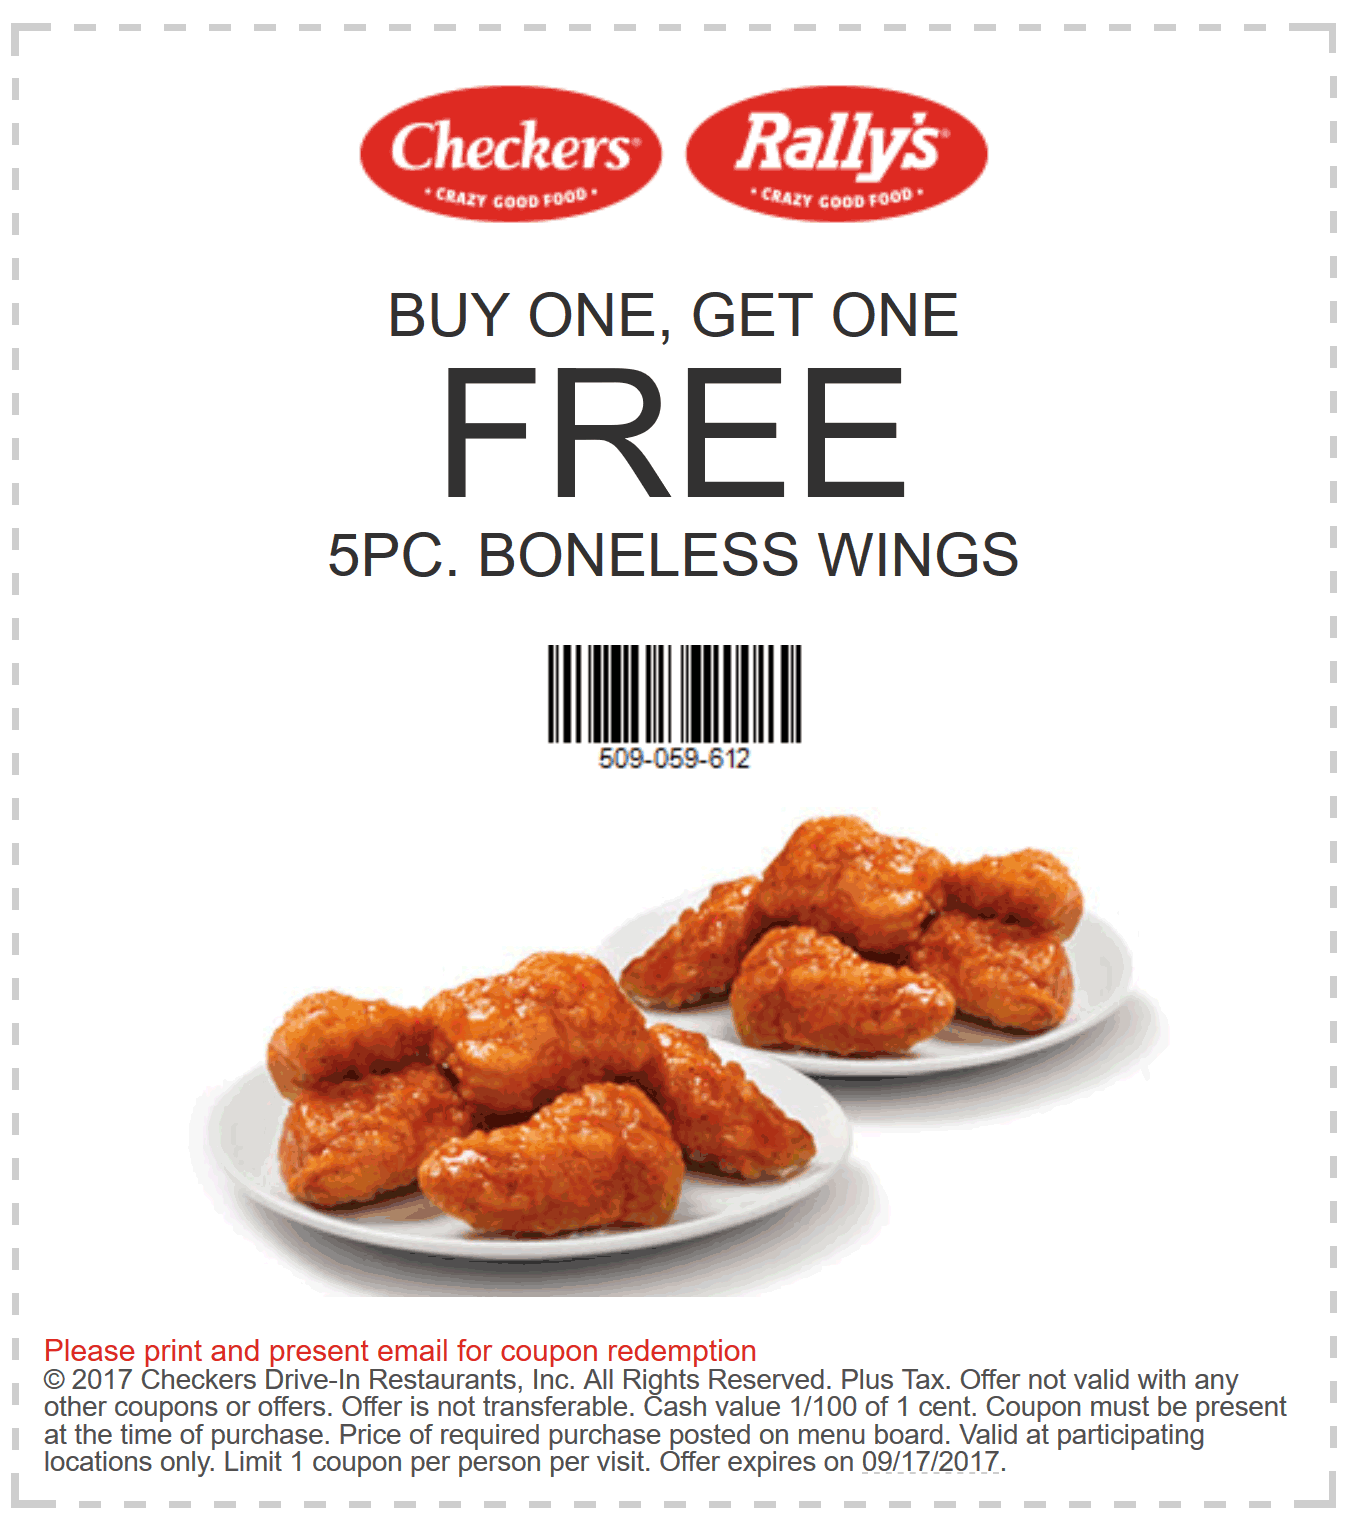 Checkers.com Promo Coupon Second 5pc boneless wings free at Rallys & Checkers restaurants